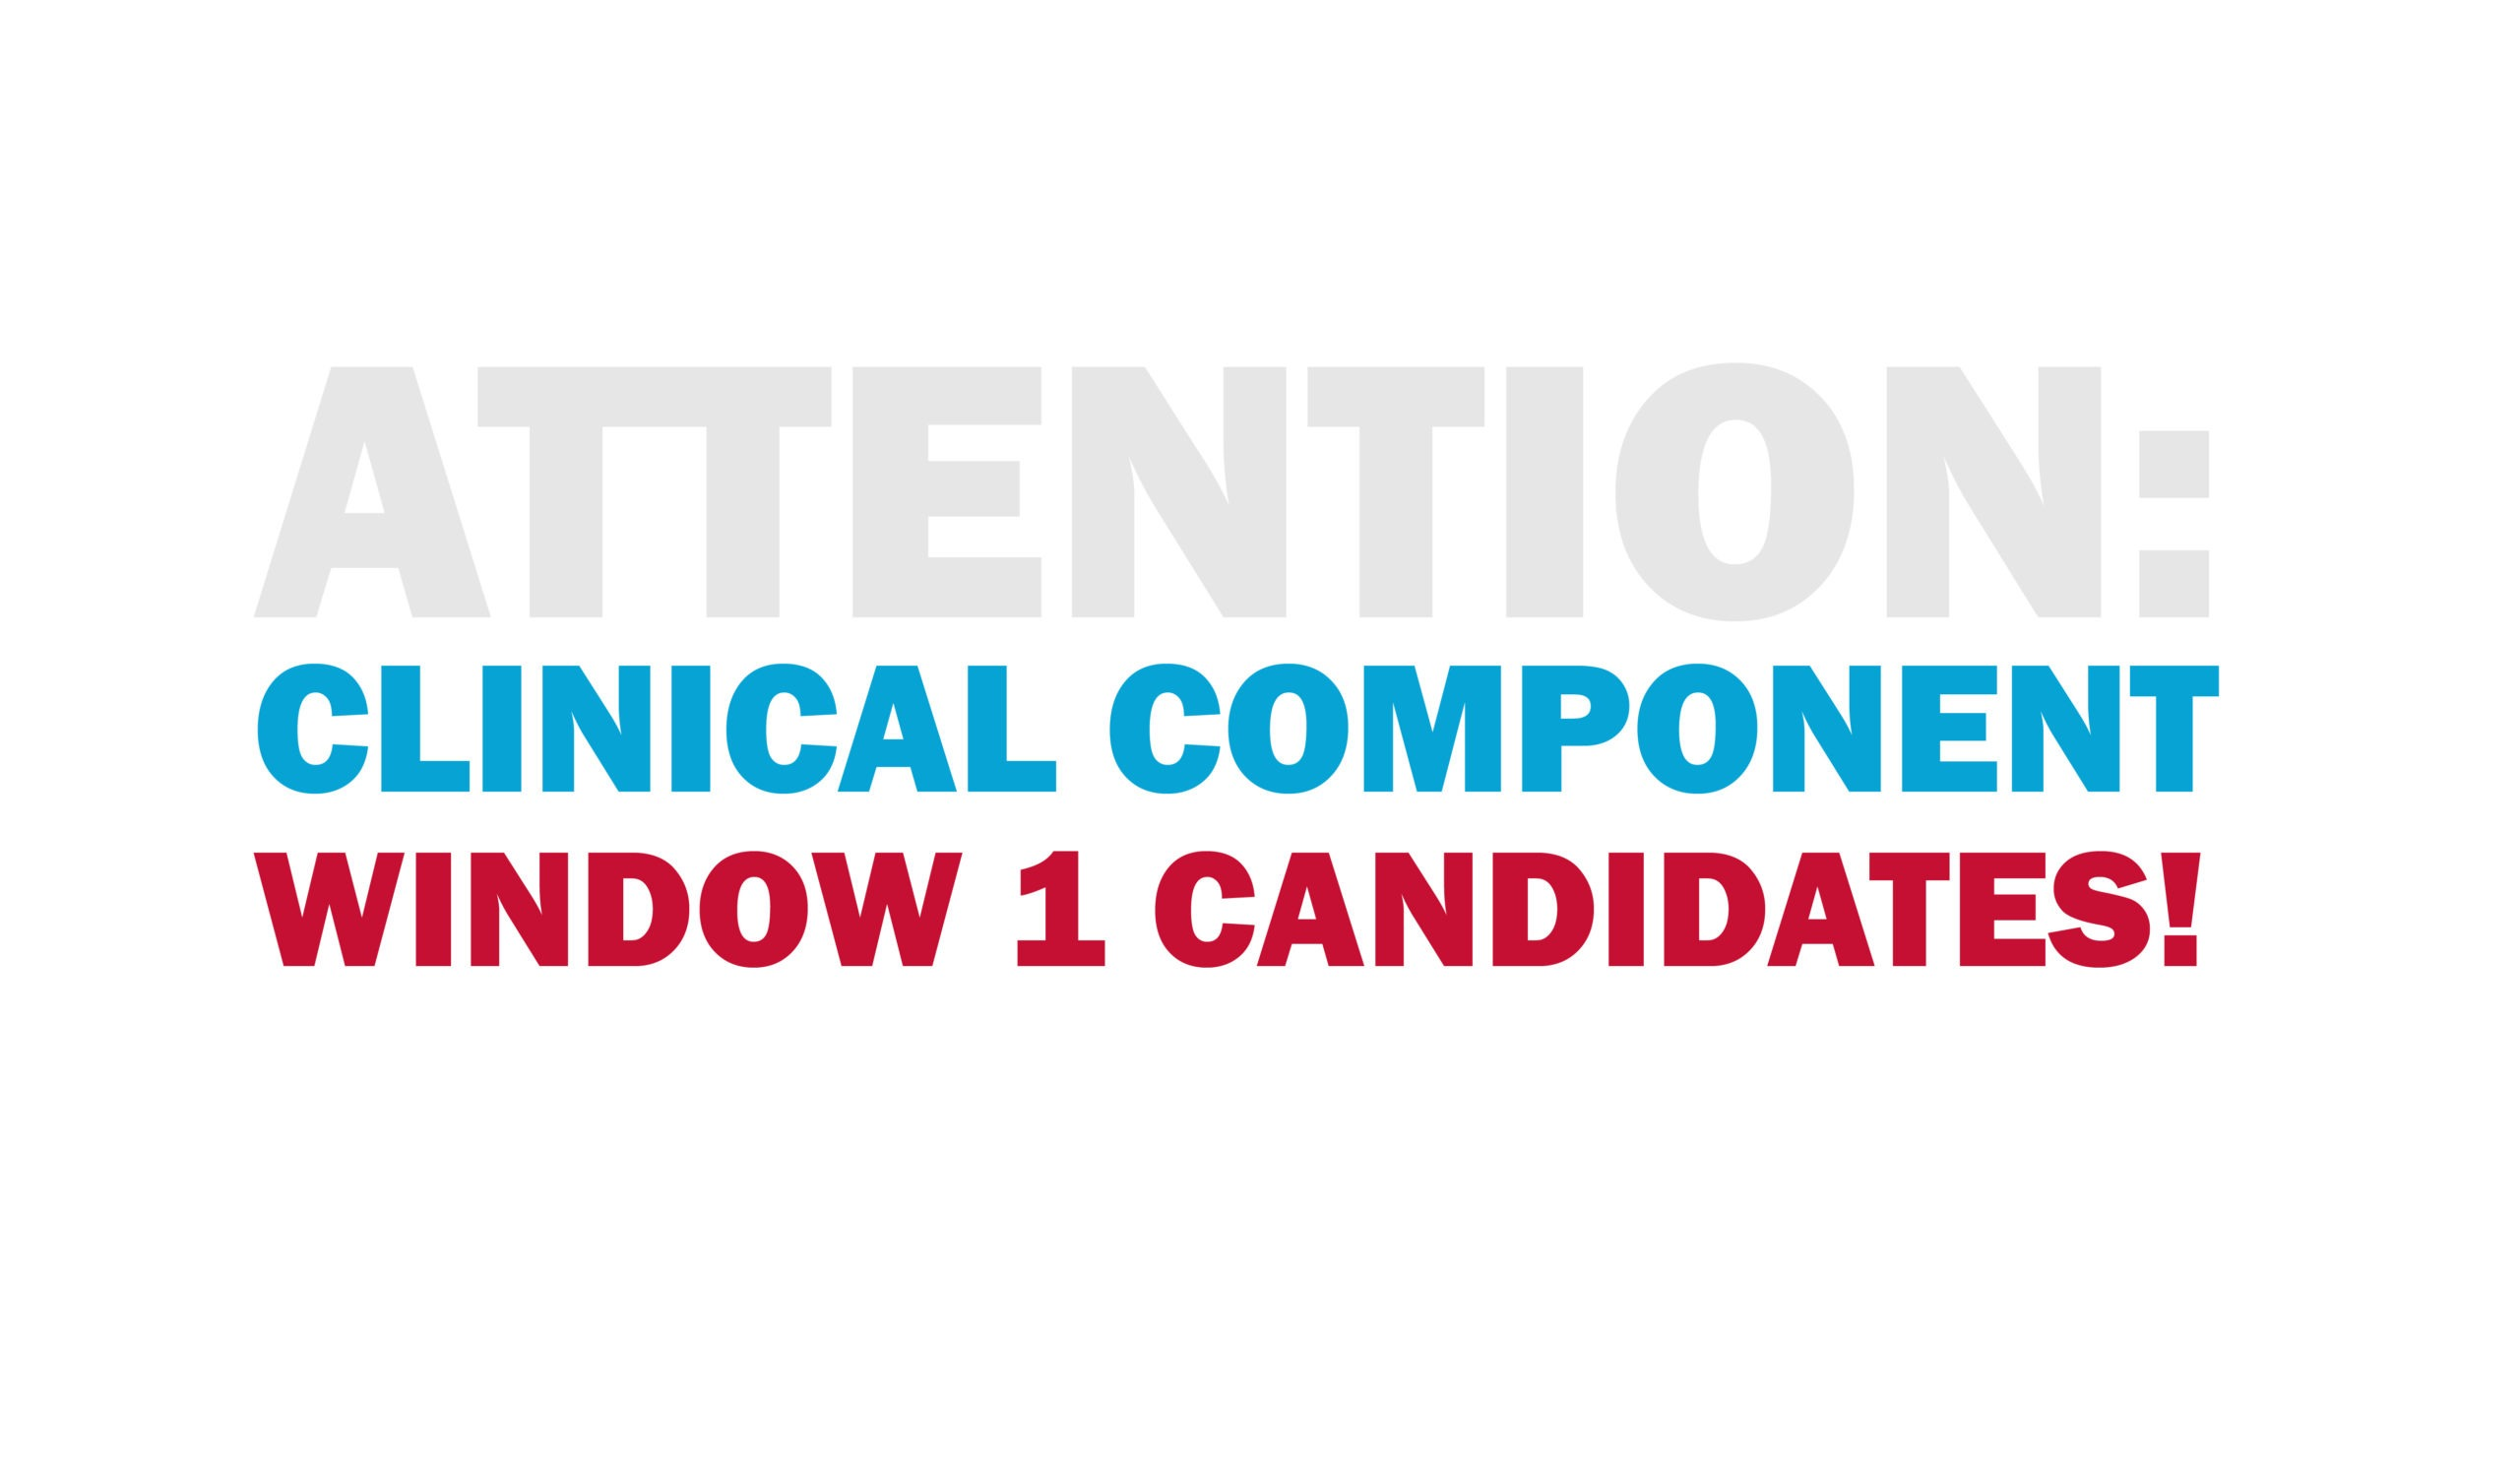 The deadline for Clinical Component Window 1 scheduling is today, July 7!